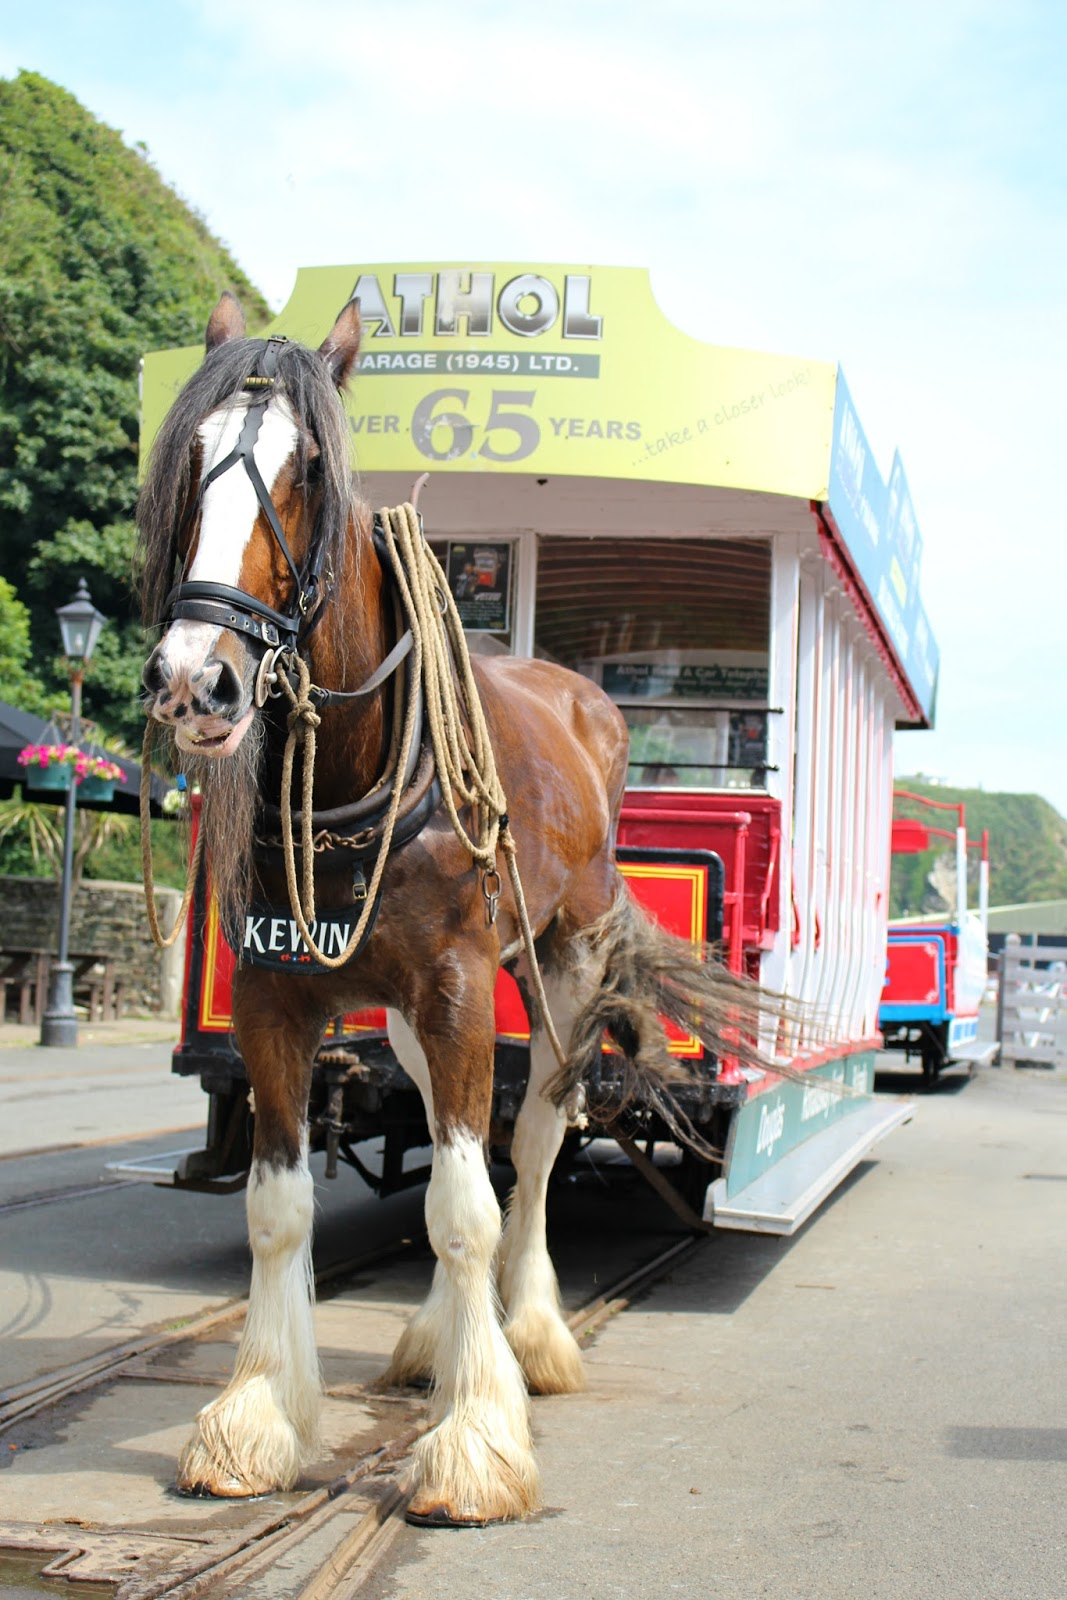 Isle Of Man Photo Diary Tram horse railway Douglas